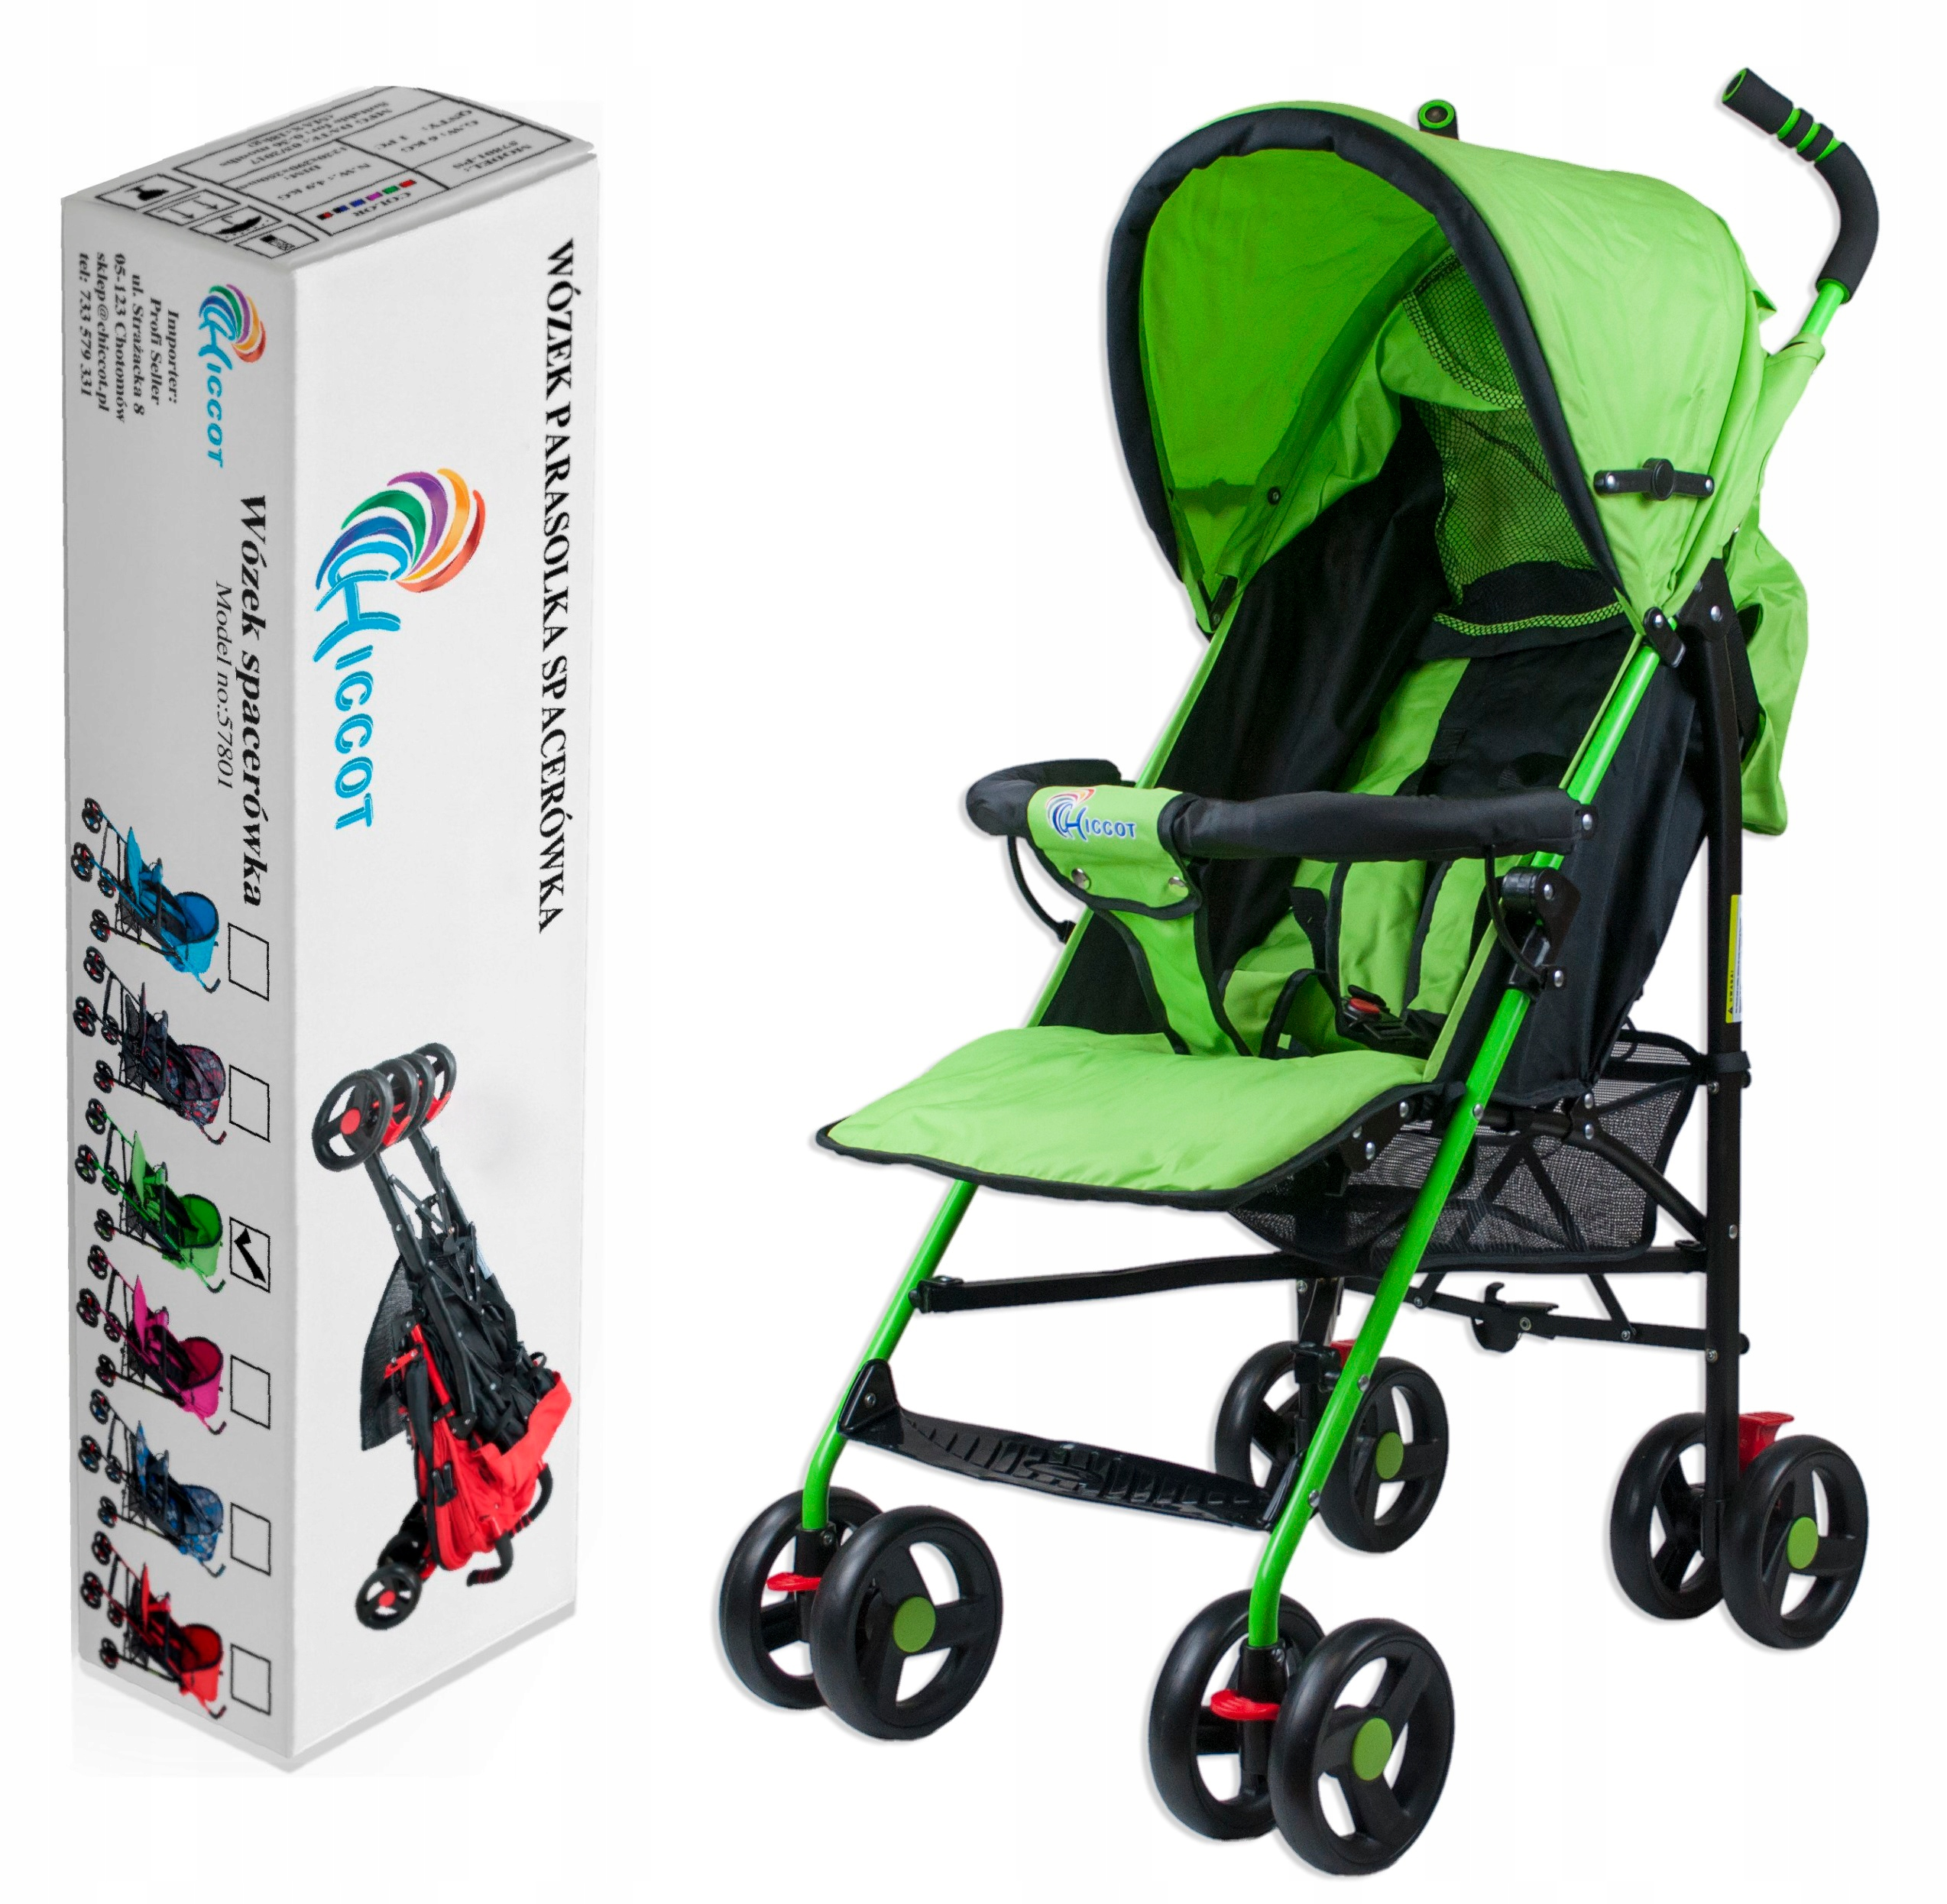 Item STROLLER EASY CHICCOT UMBRELLA STROLLER